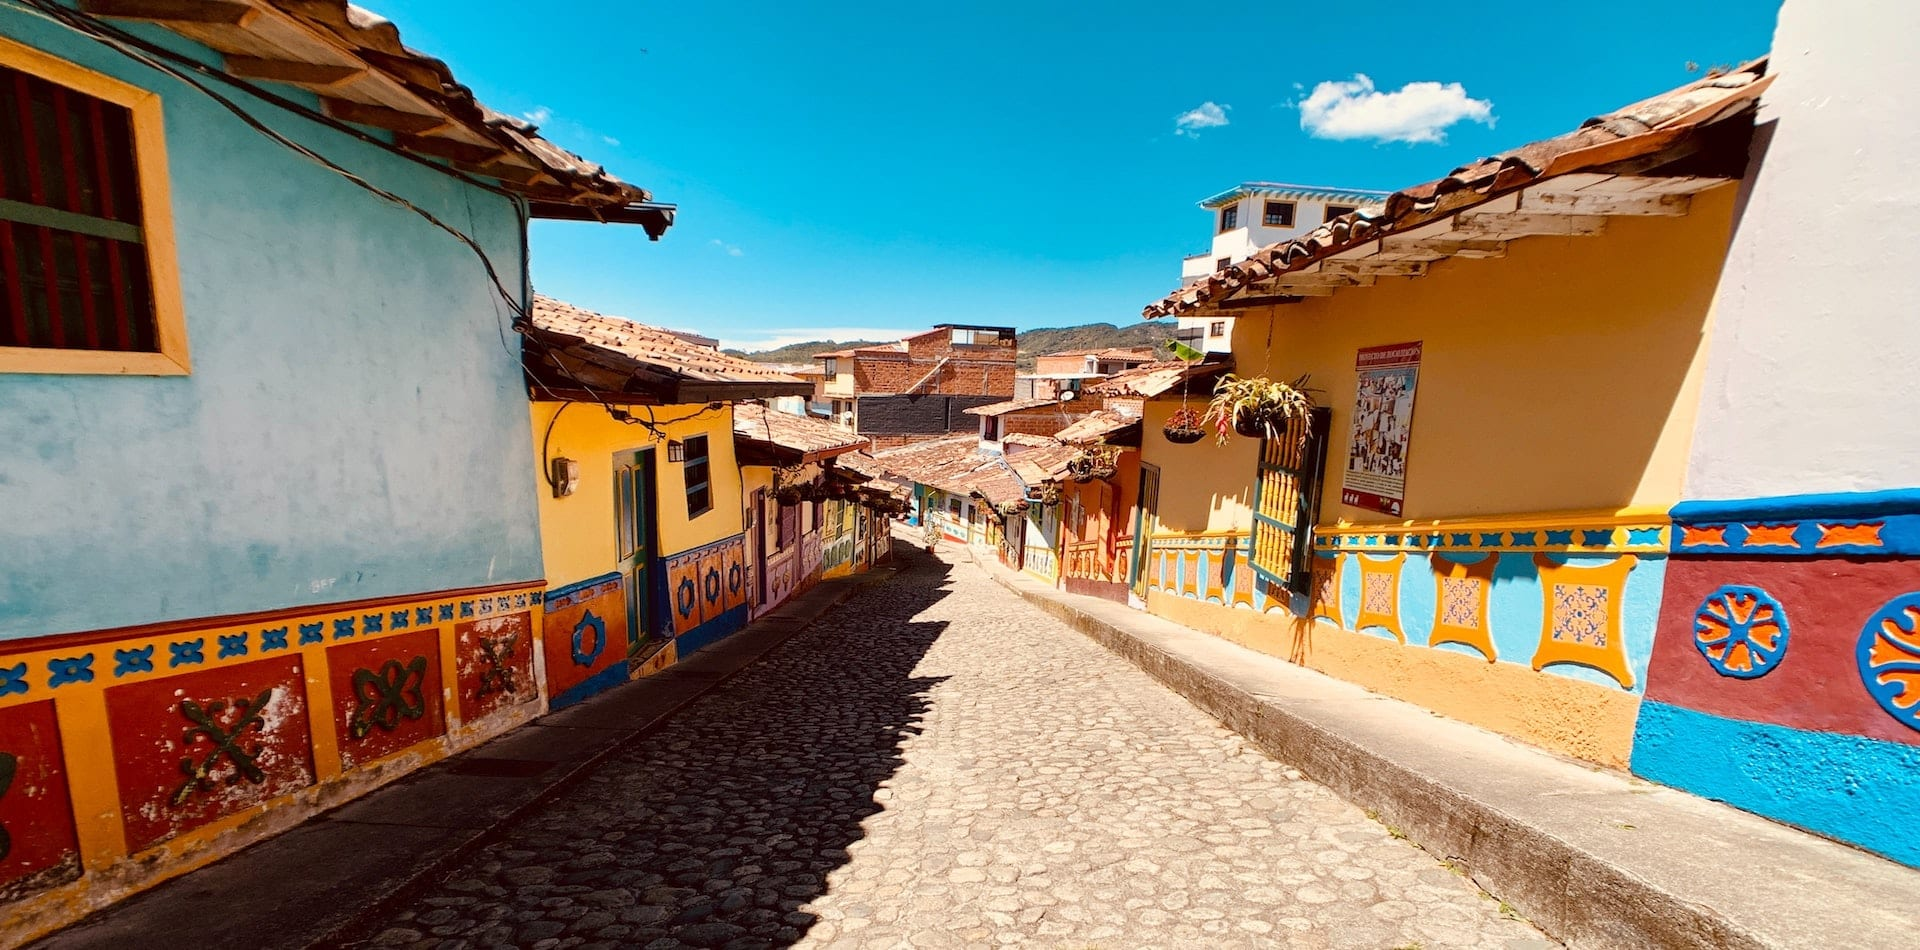 Cobbled, colourful street in Guatape, Colombia